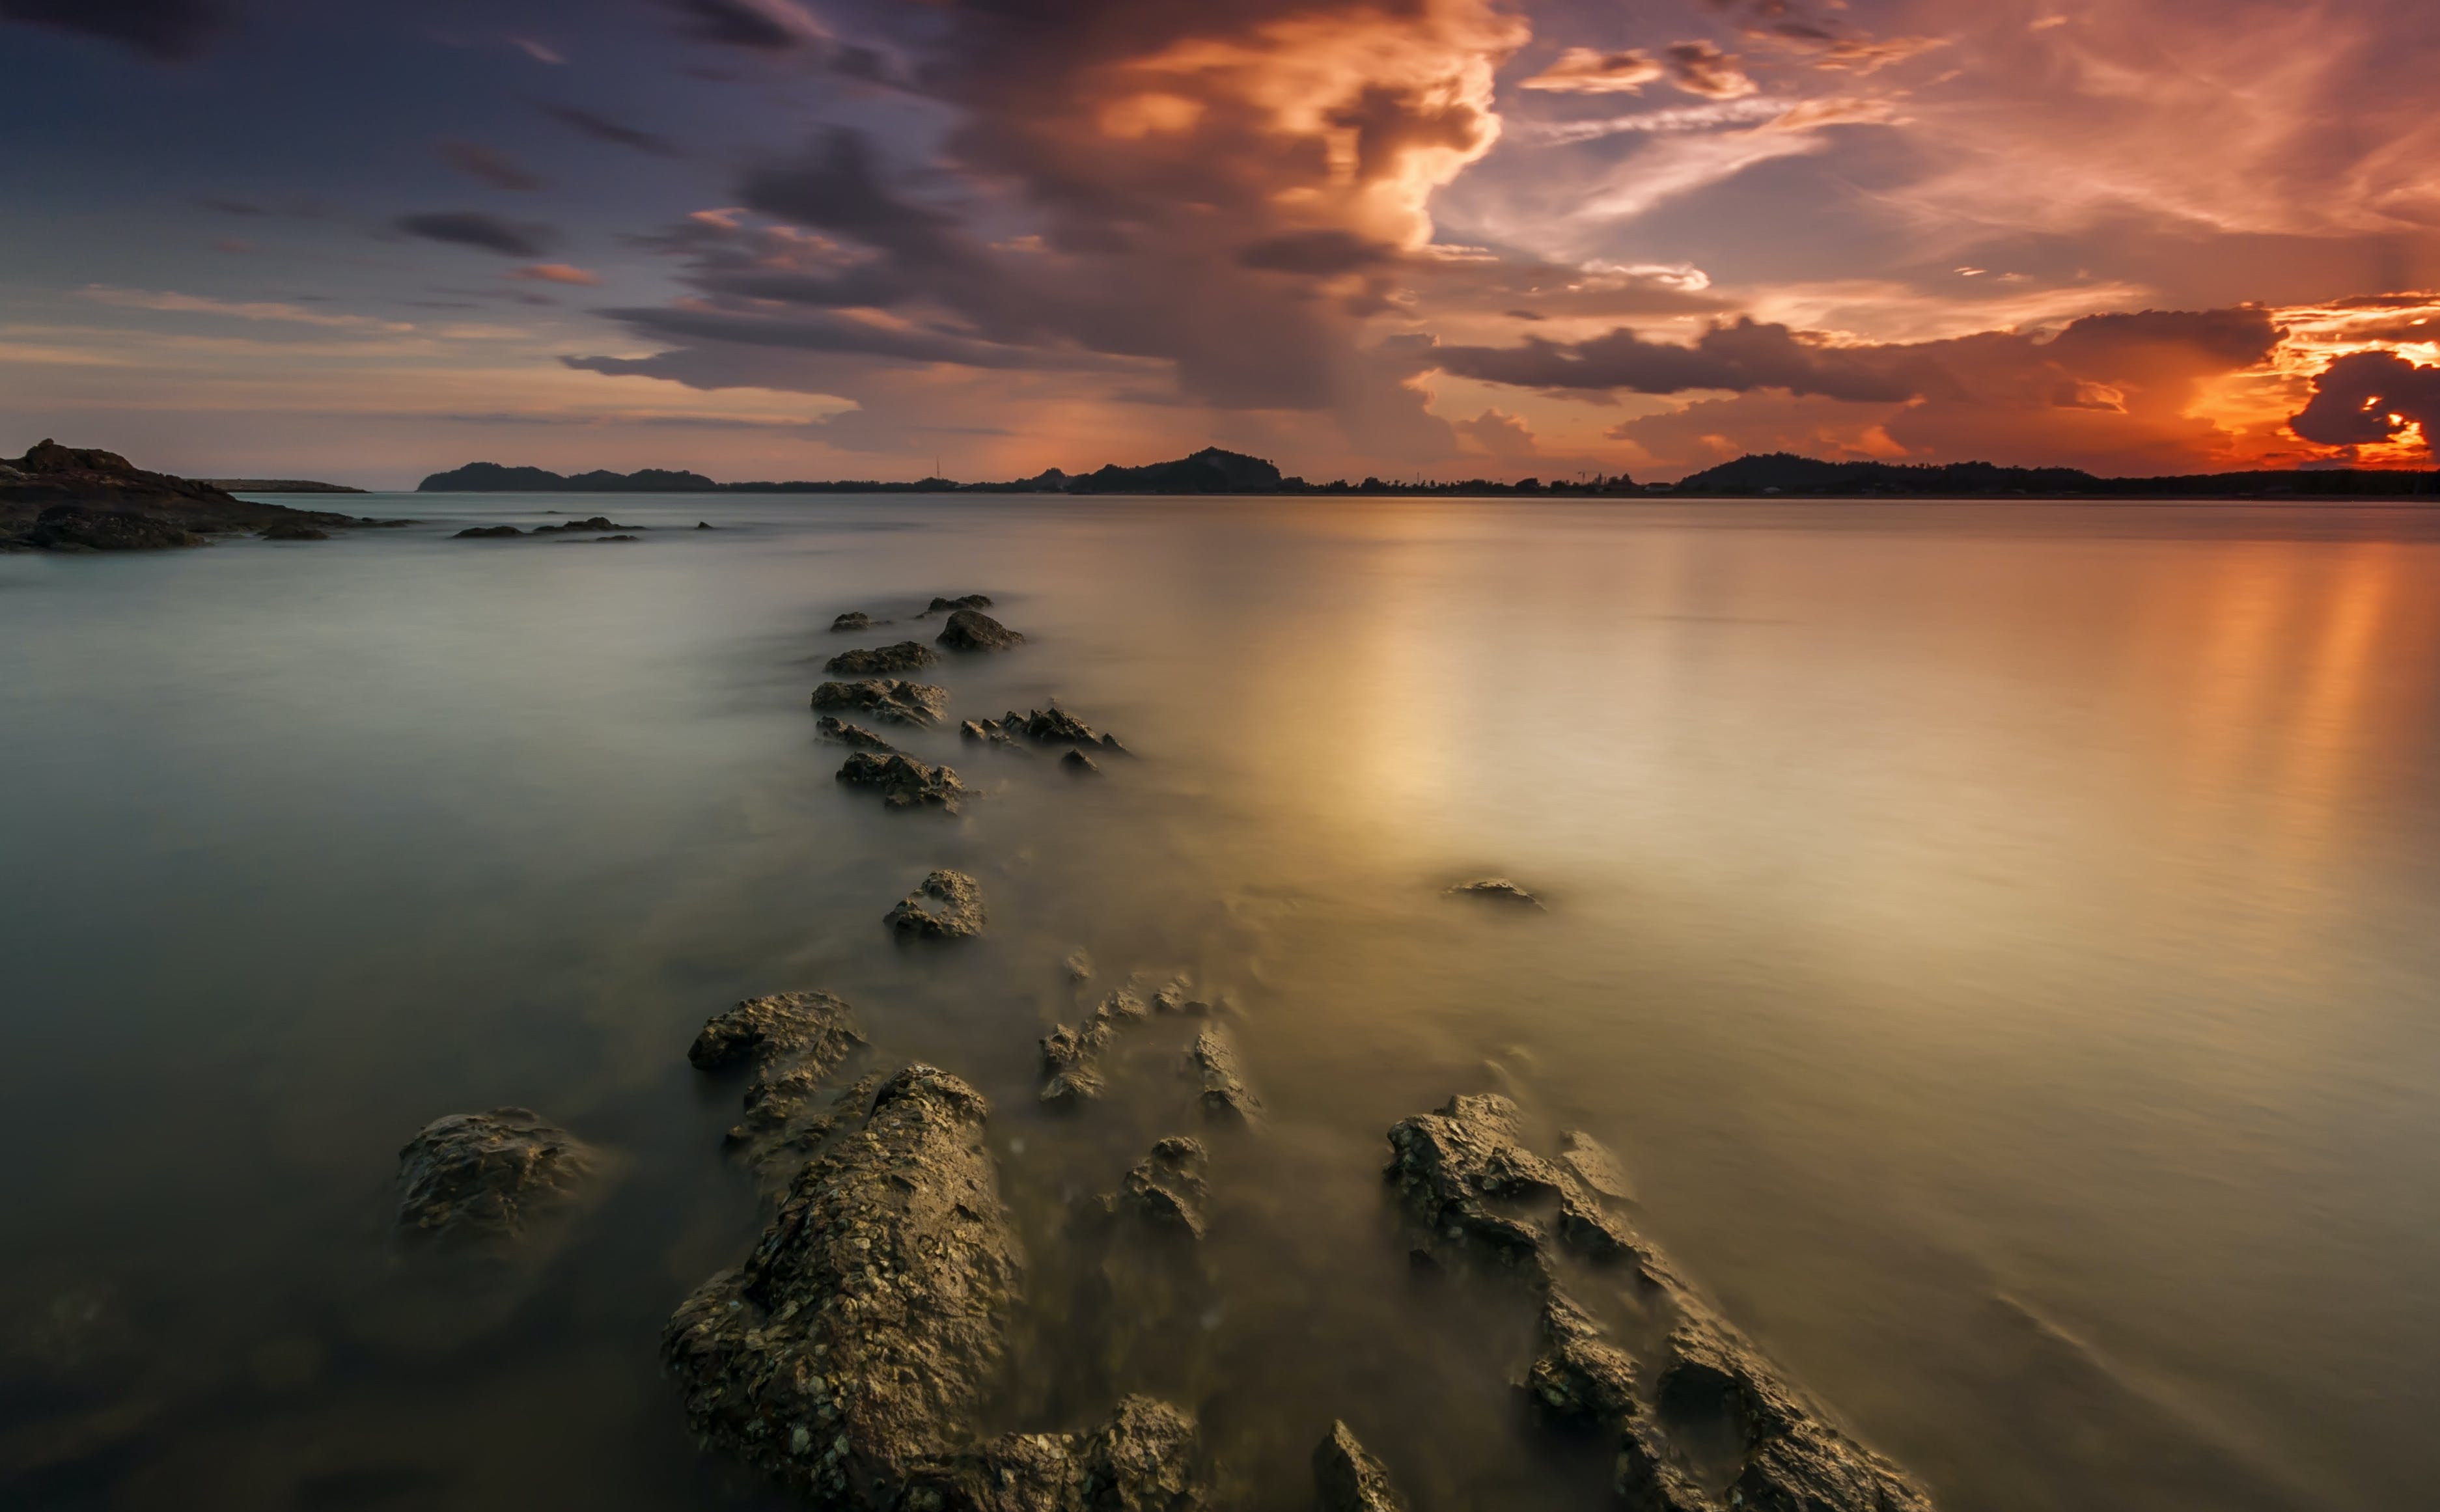 Time Lapse Photography of Body of Water and Sunset